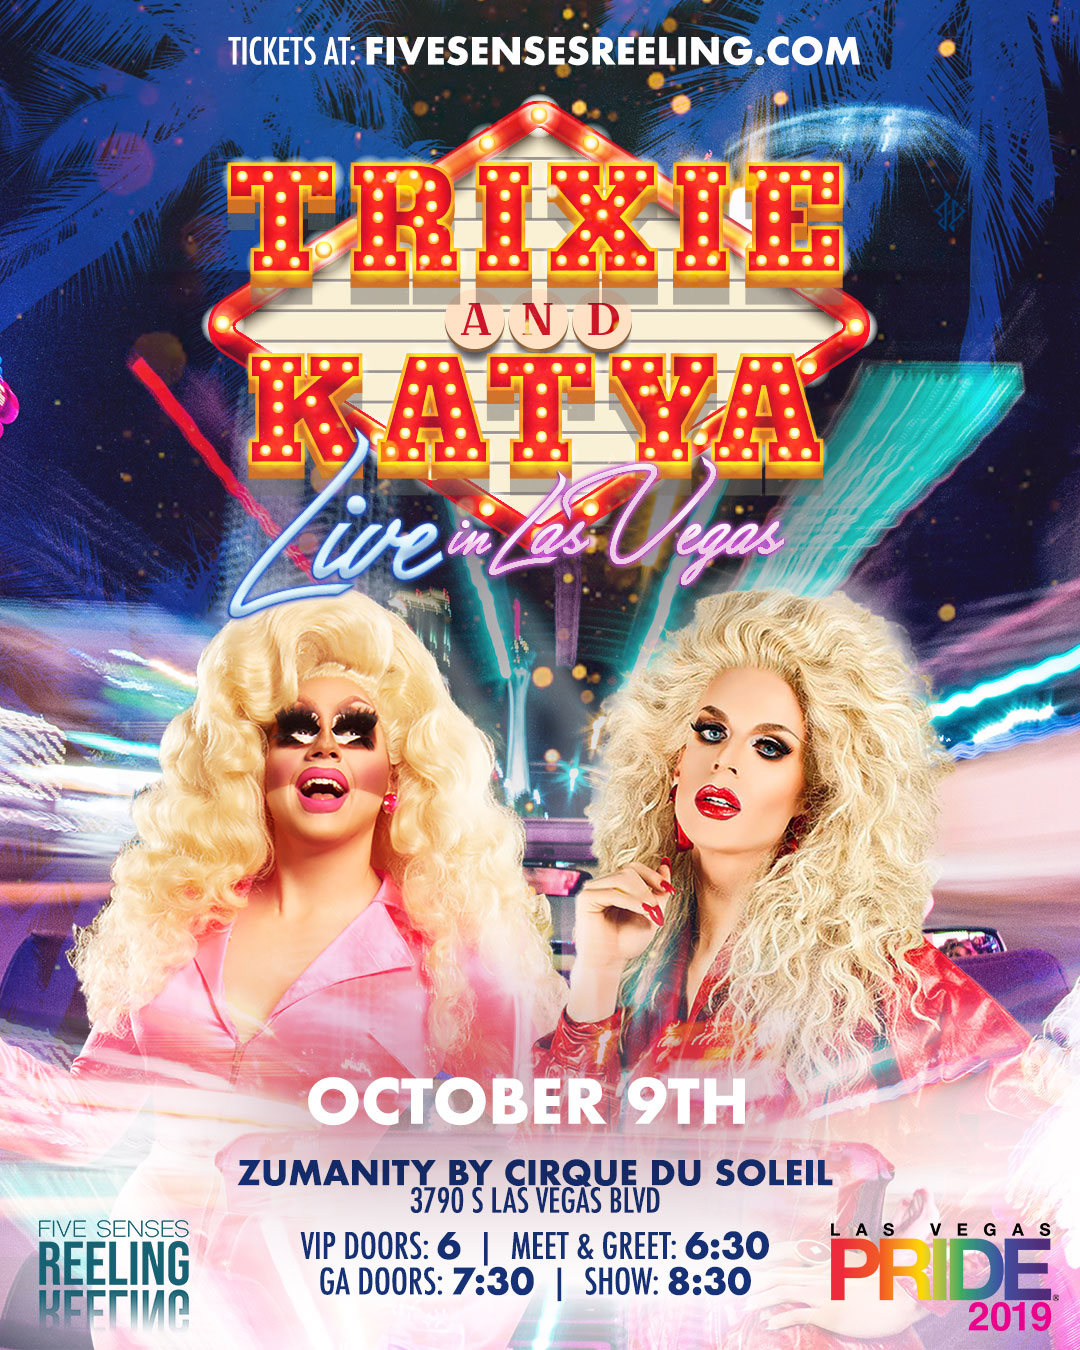 Trixie-and-Katya-Live-Vegas-1080x1350.jpg